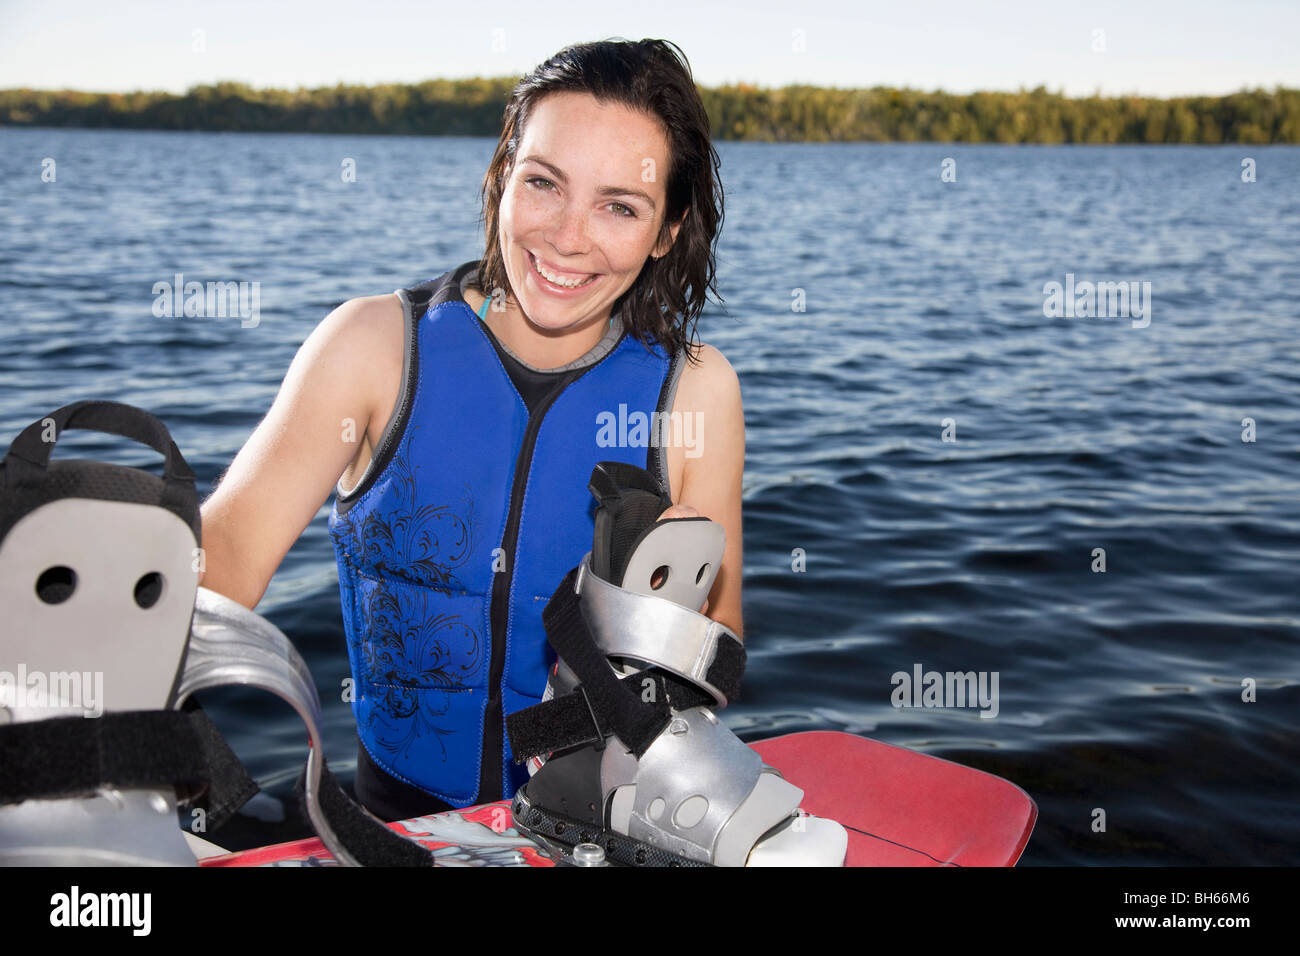 Woman standing in water with wakeboard - Stock Image